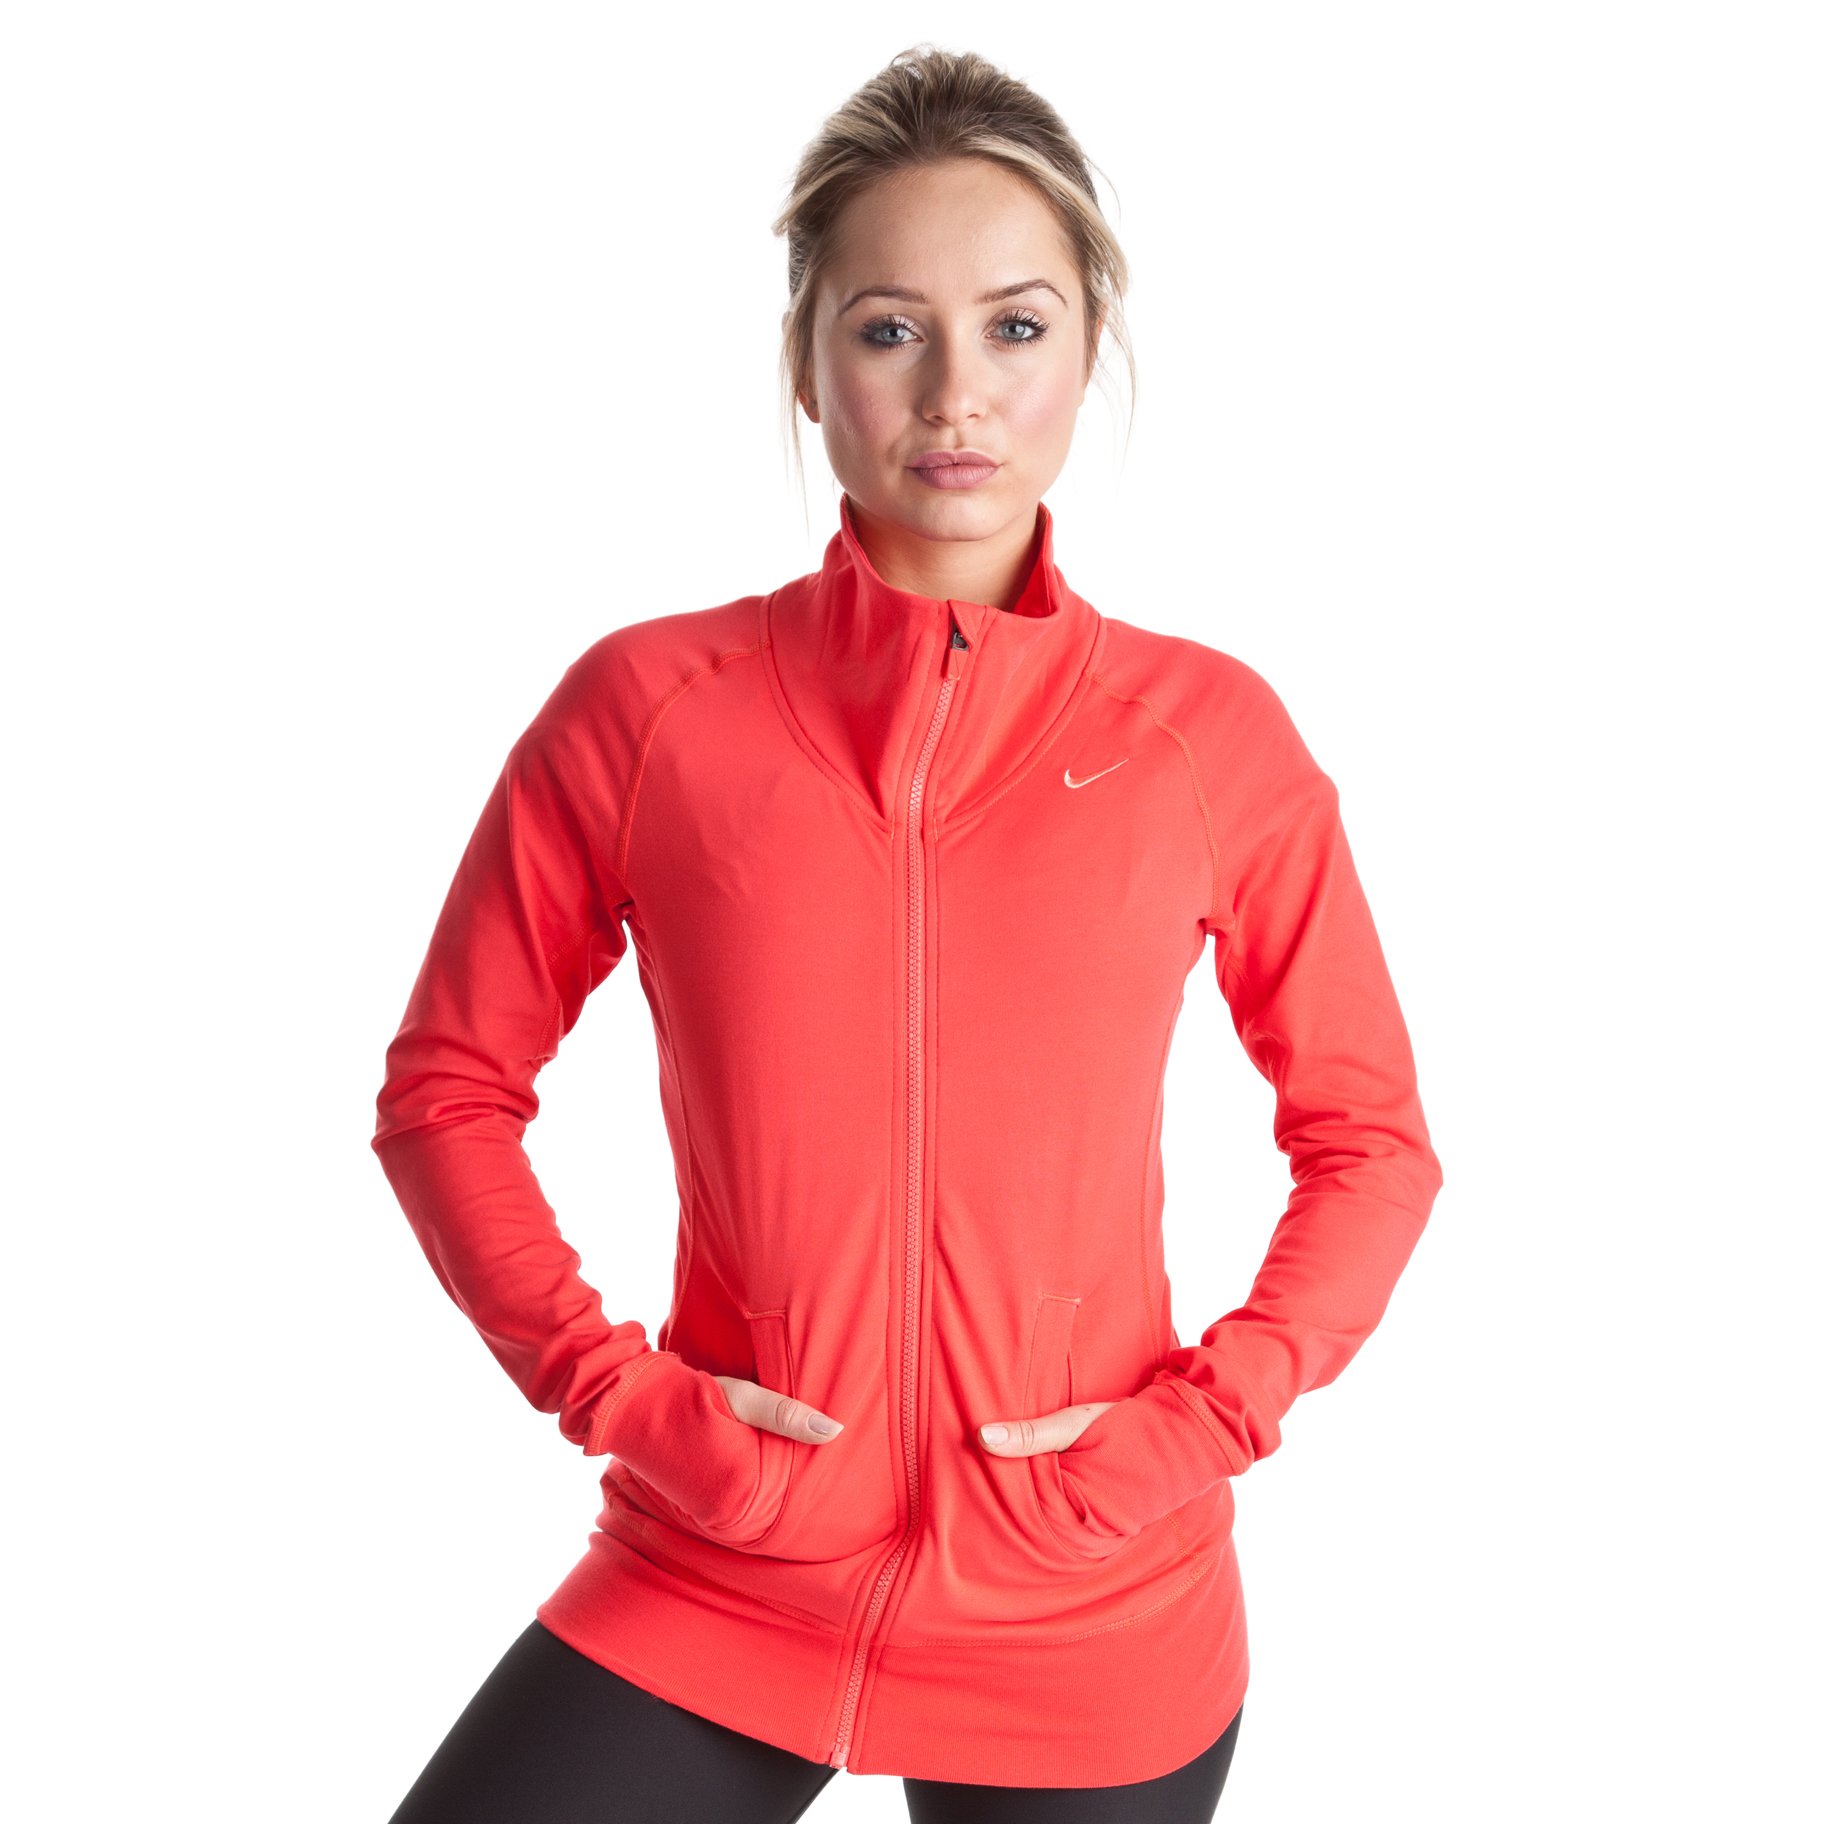 Nike Dry Fit Empire Jacket - Sunburst/Bright Peach - Womens